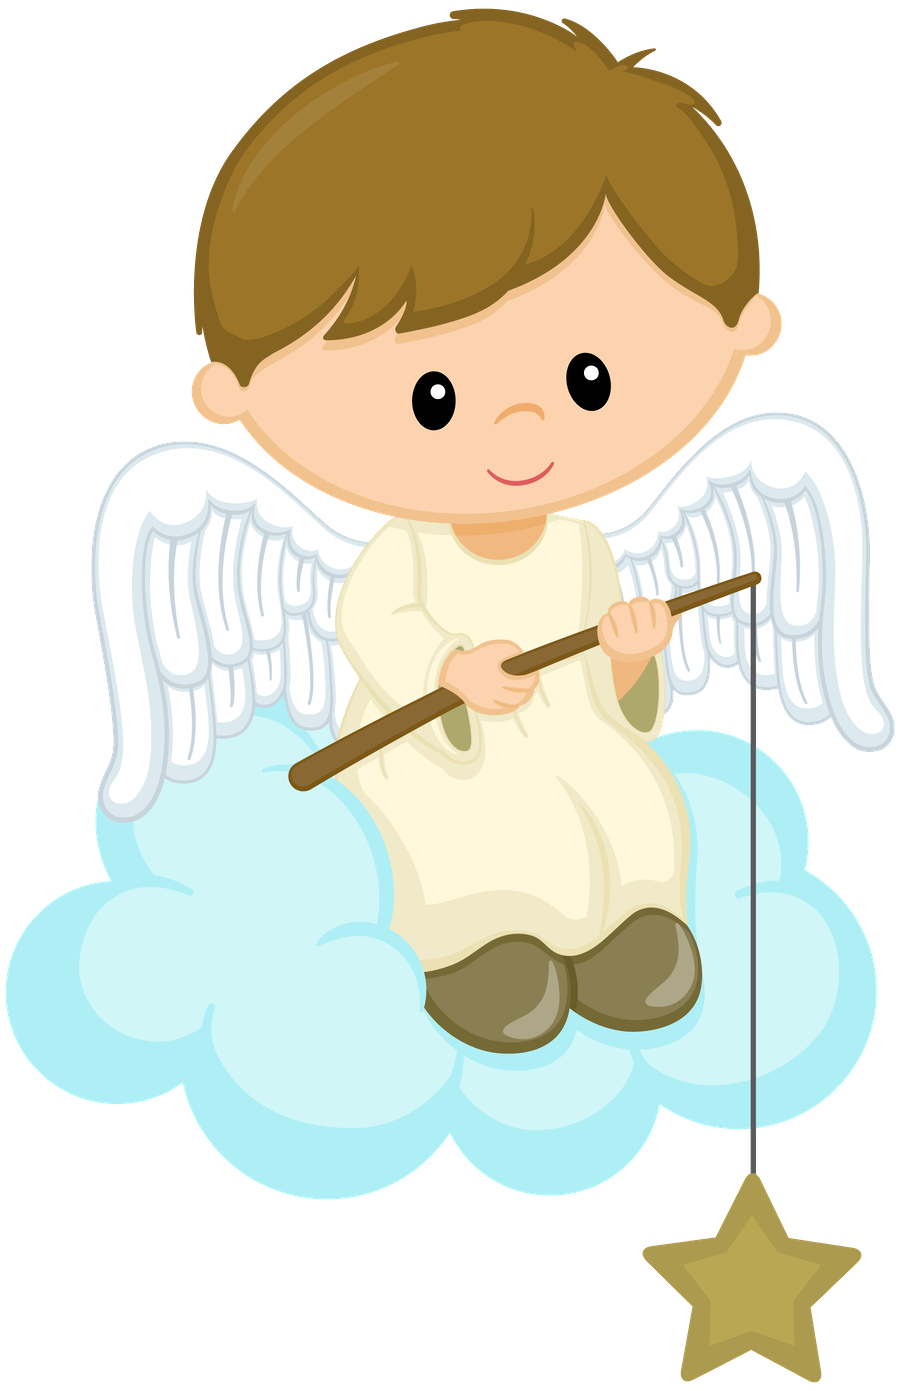 Youtube clipart halo. Archivo de lbumes siluetas